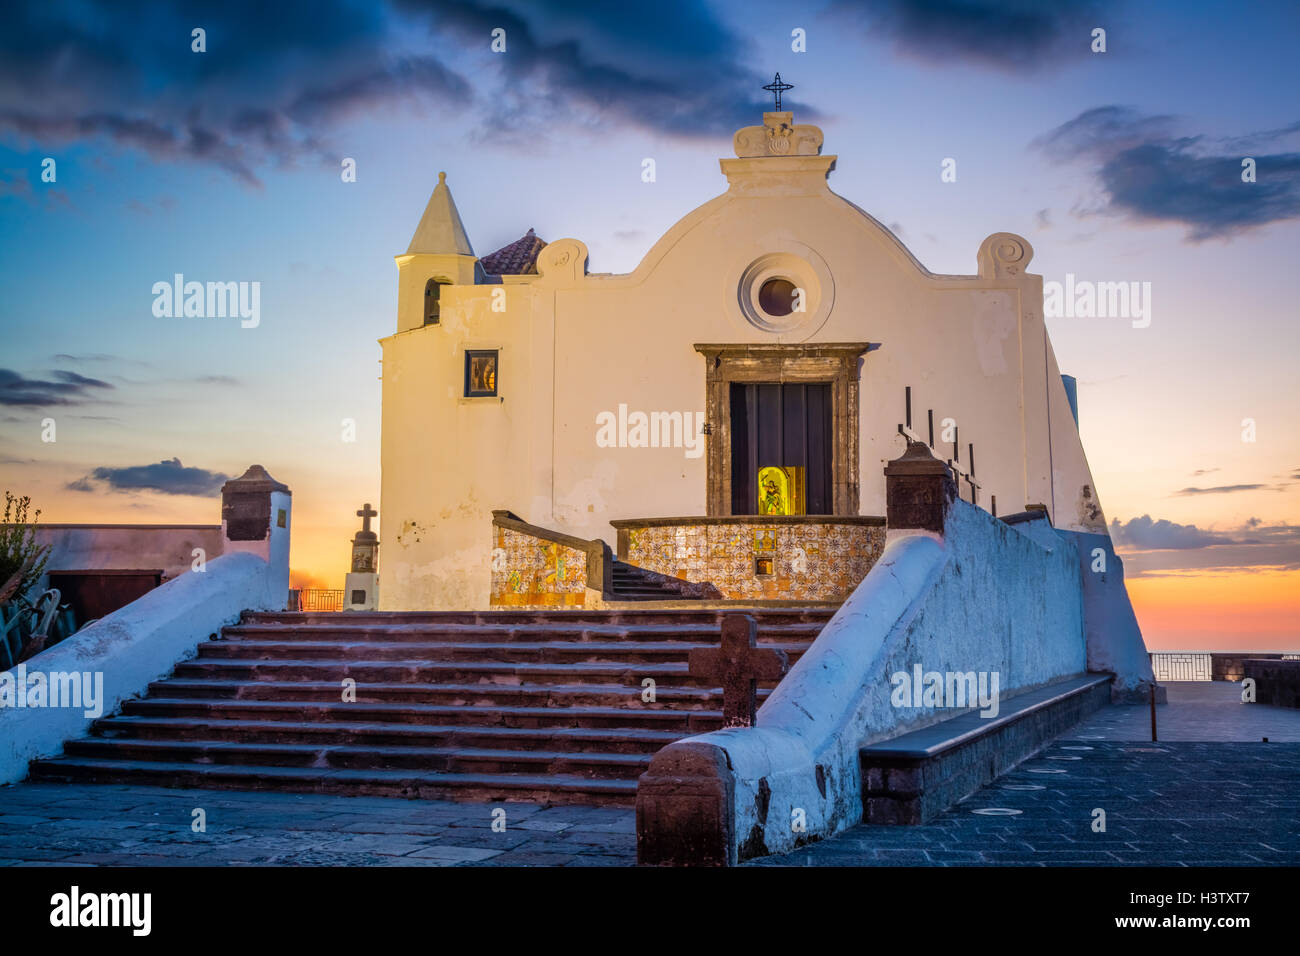 The church Chiesa del Soccorso in Forio on the island of Ischia, Italy. Stock Photo